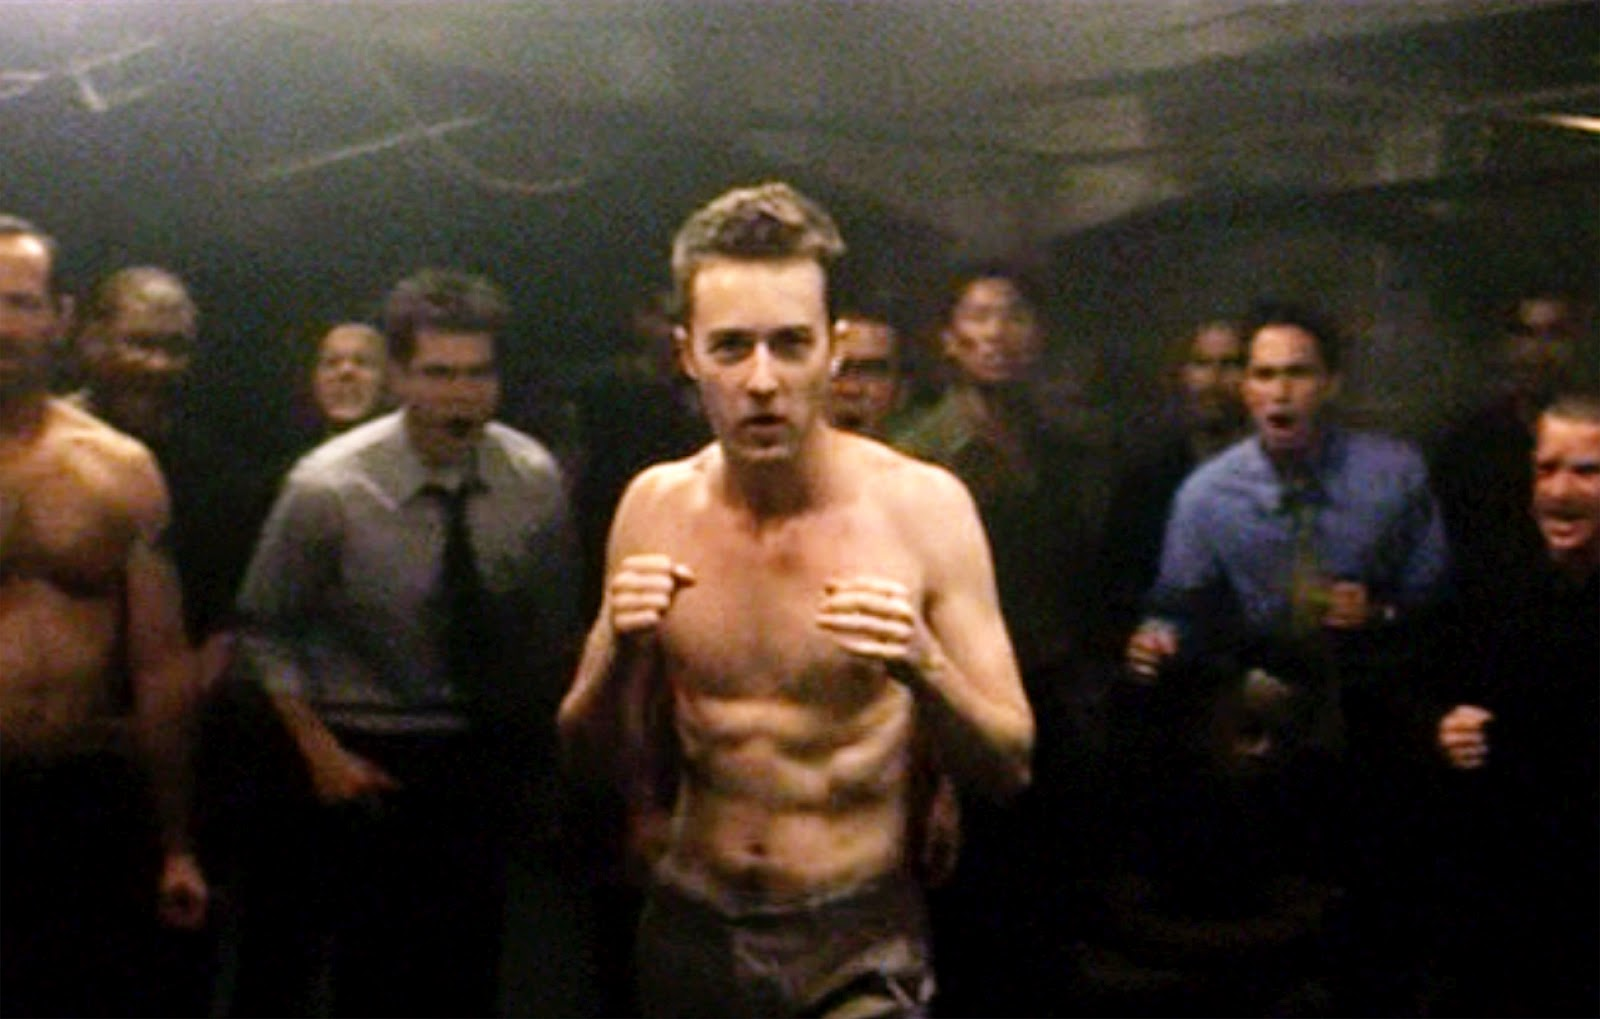 fight_club_film_fight_images_for_desktop.jpg